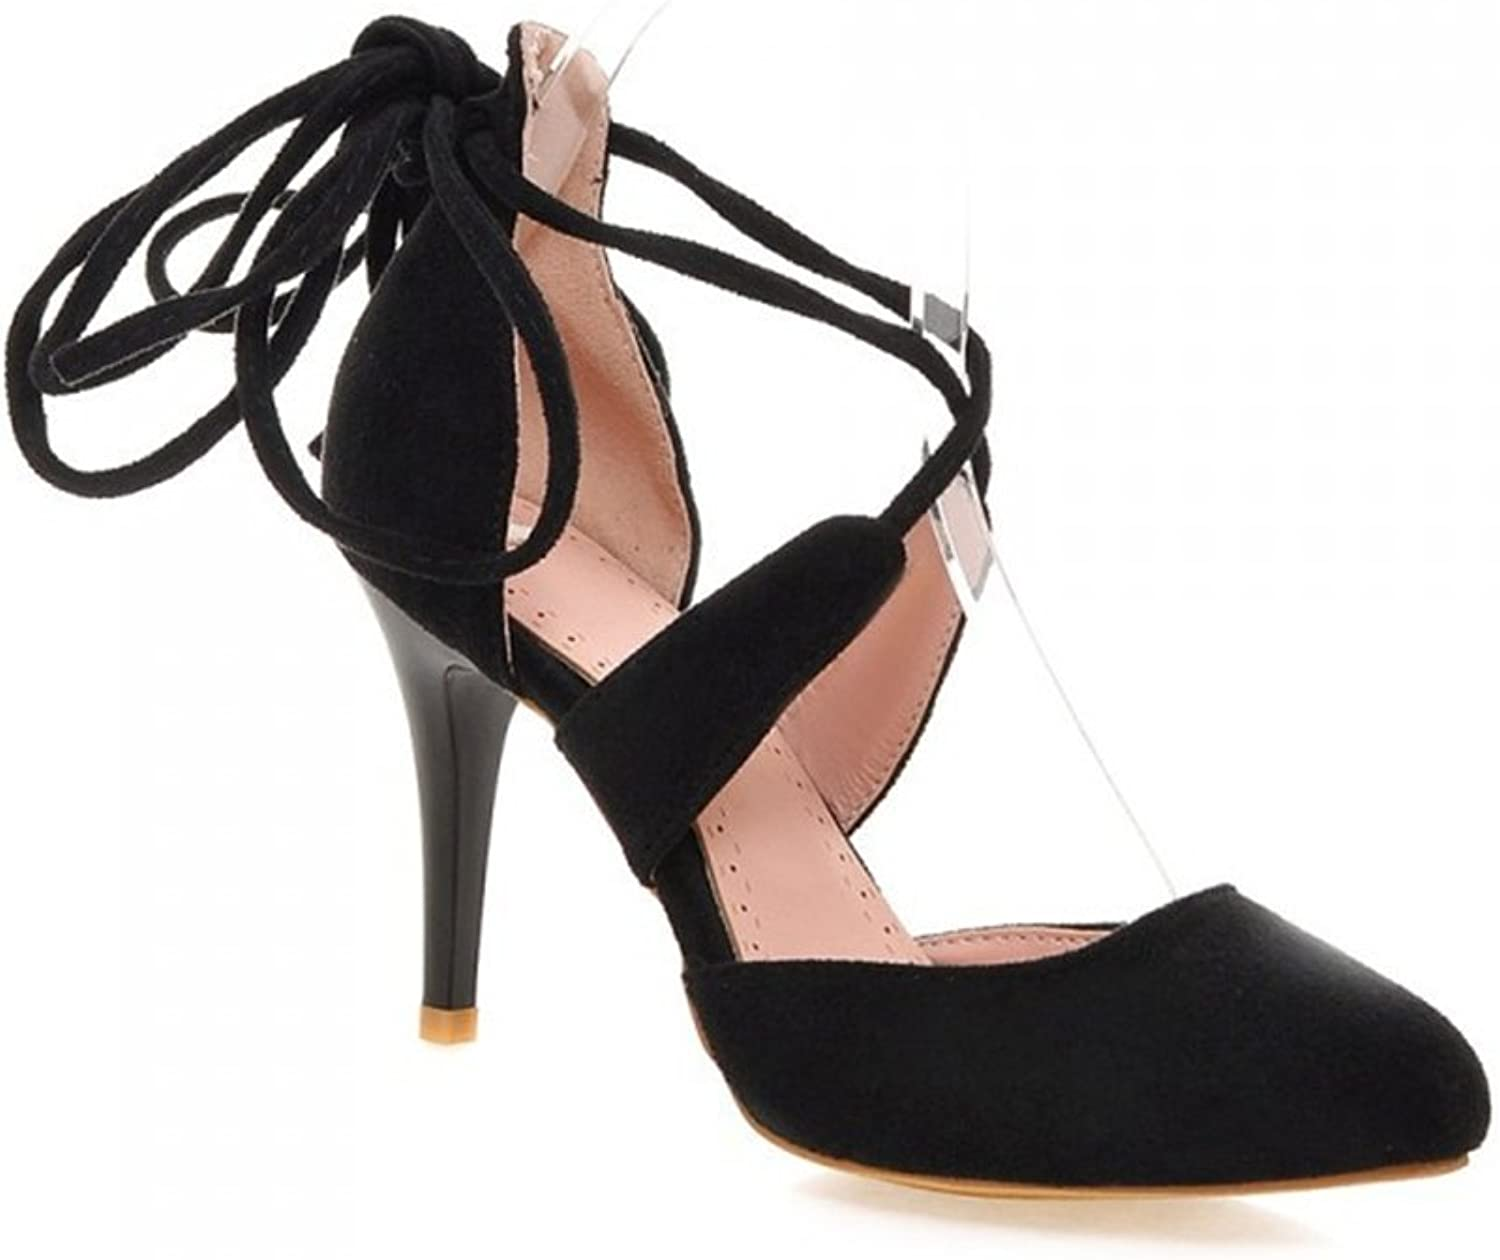 Women Ankle Lace-Up High Block Heel Office Work Court Pointed Toe Suede High Heel shoes Sandals